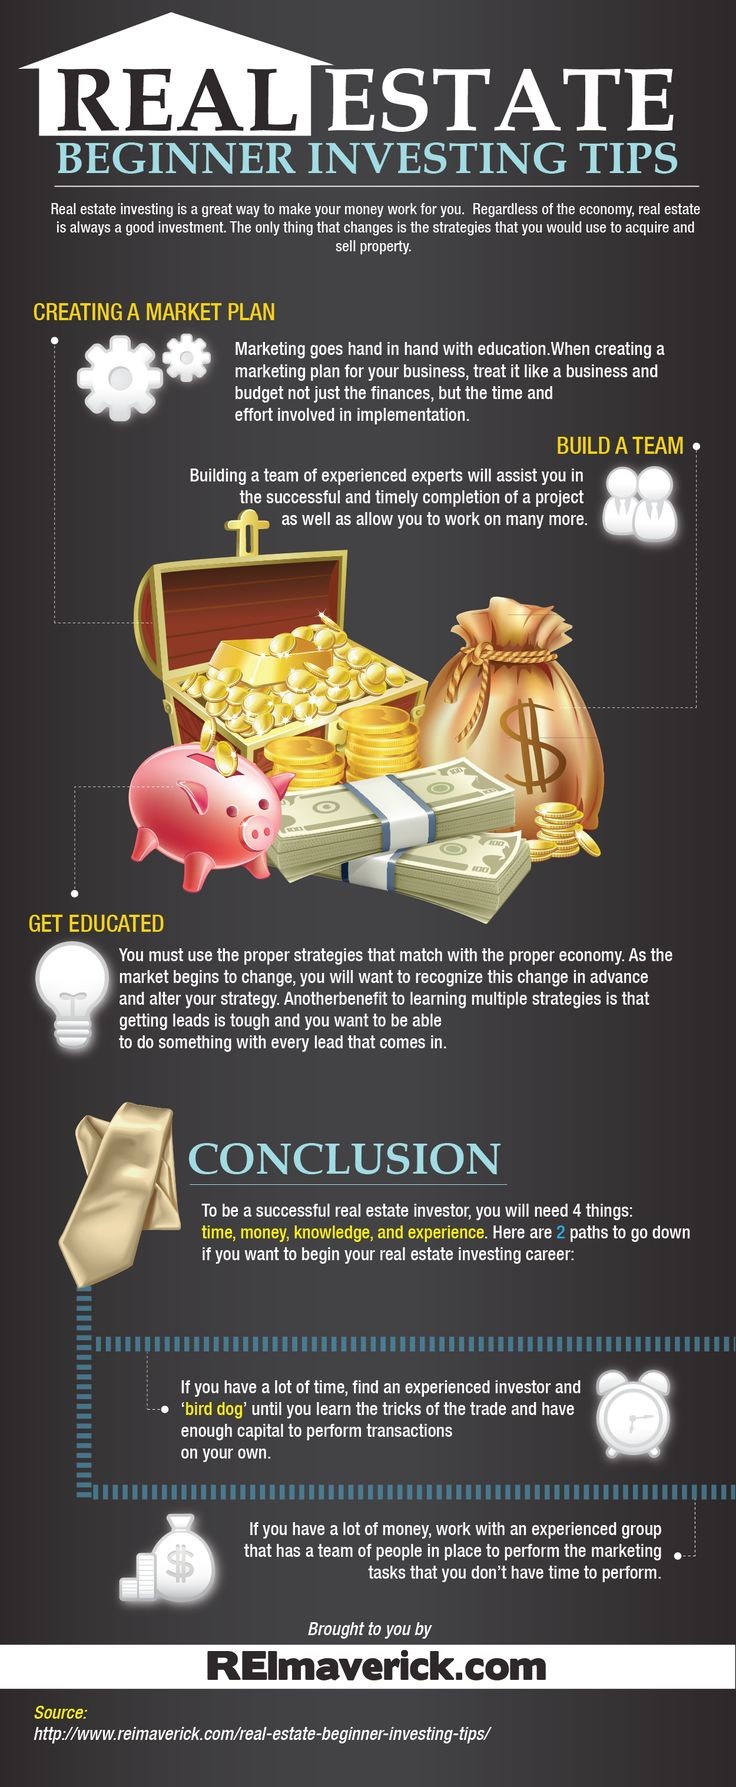 Real Estate Beginner Investing Tips - Infographic design